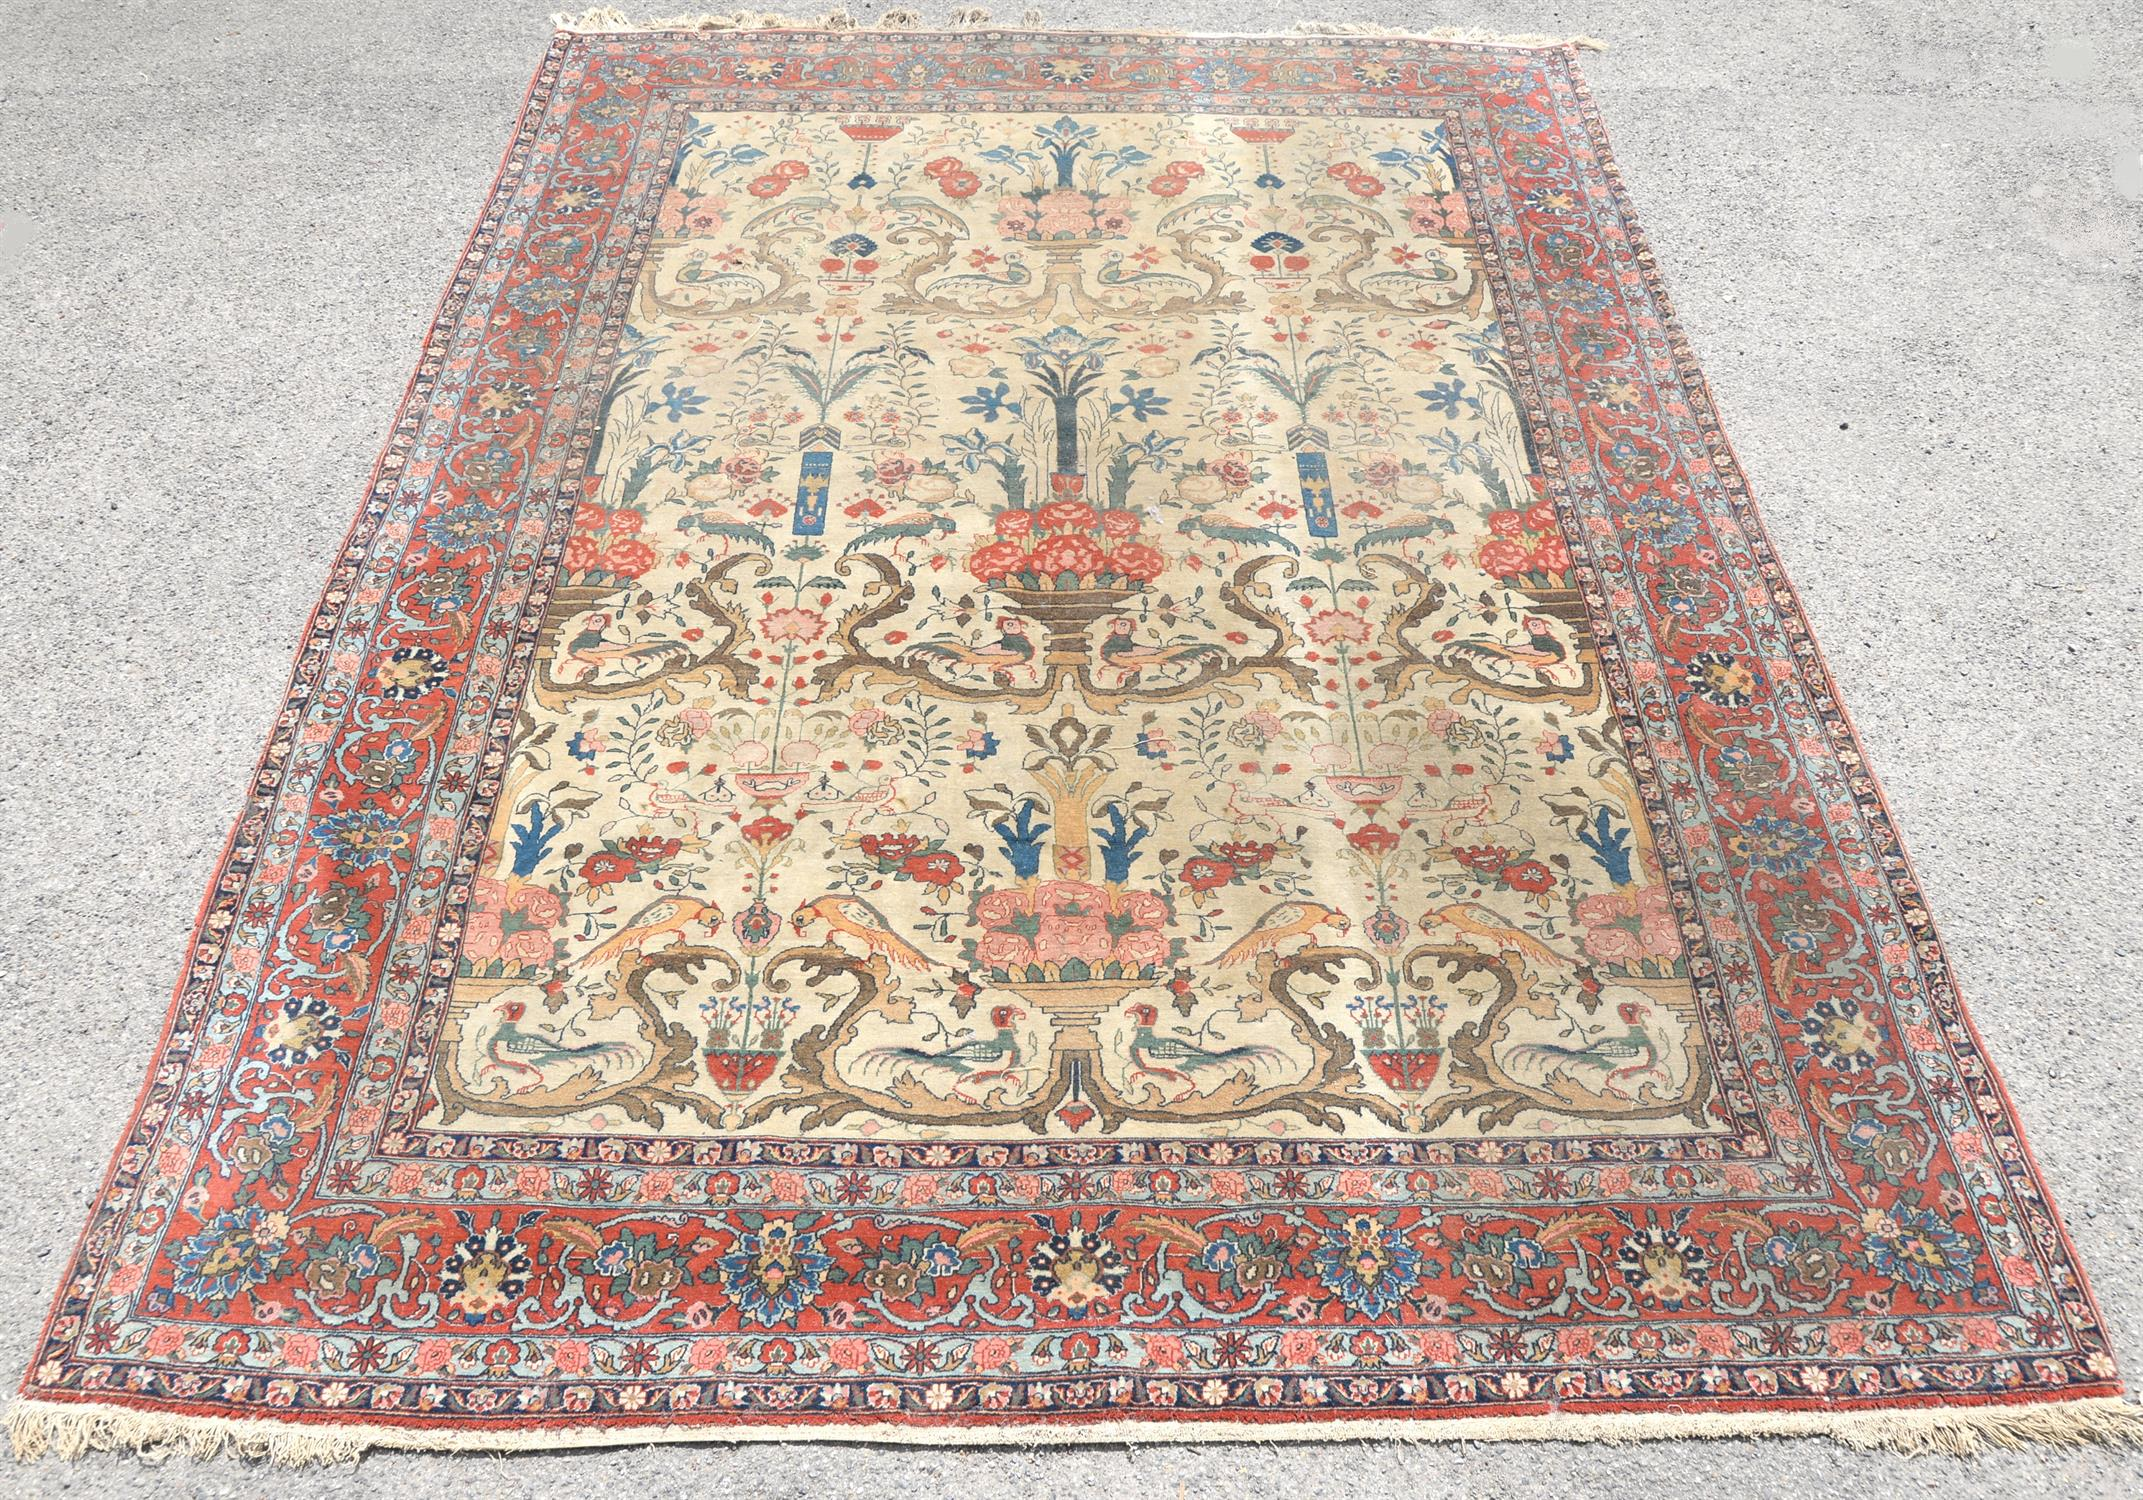 Persian carpet decorated with floral urns, birds and flowers within a floral border, 330 x 238cm